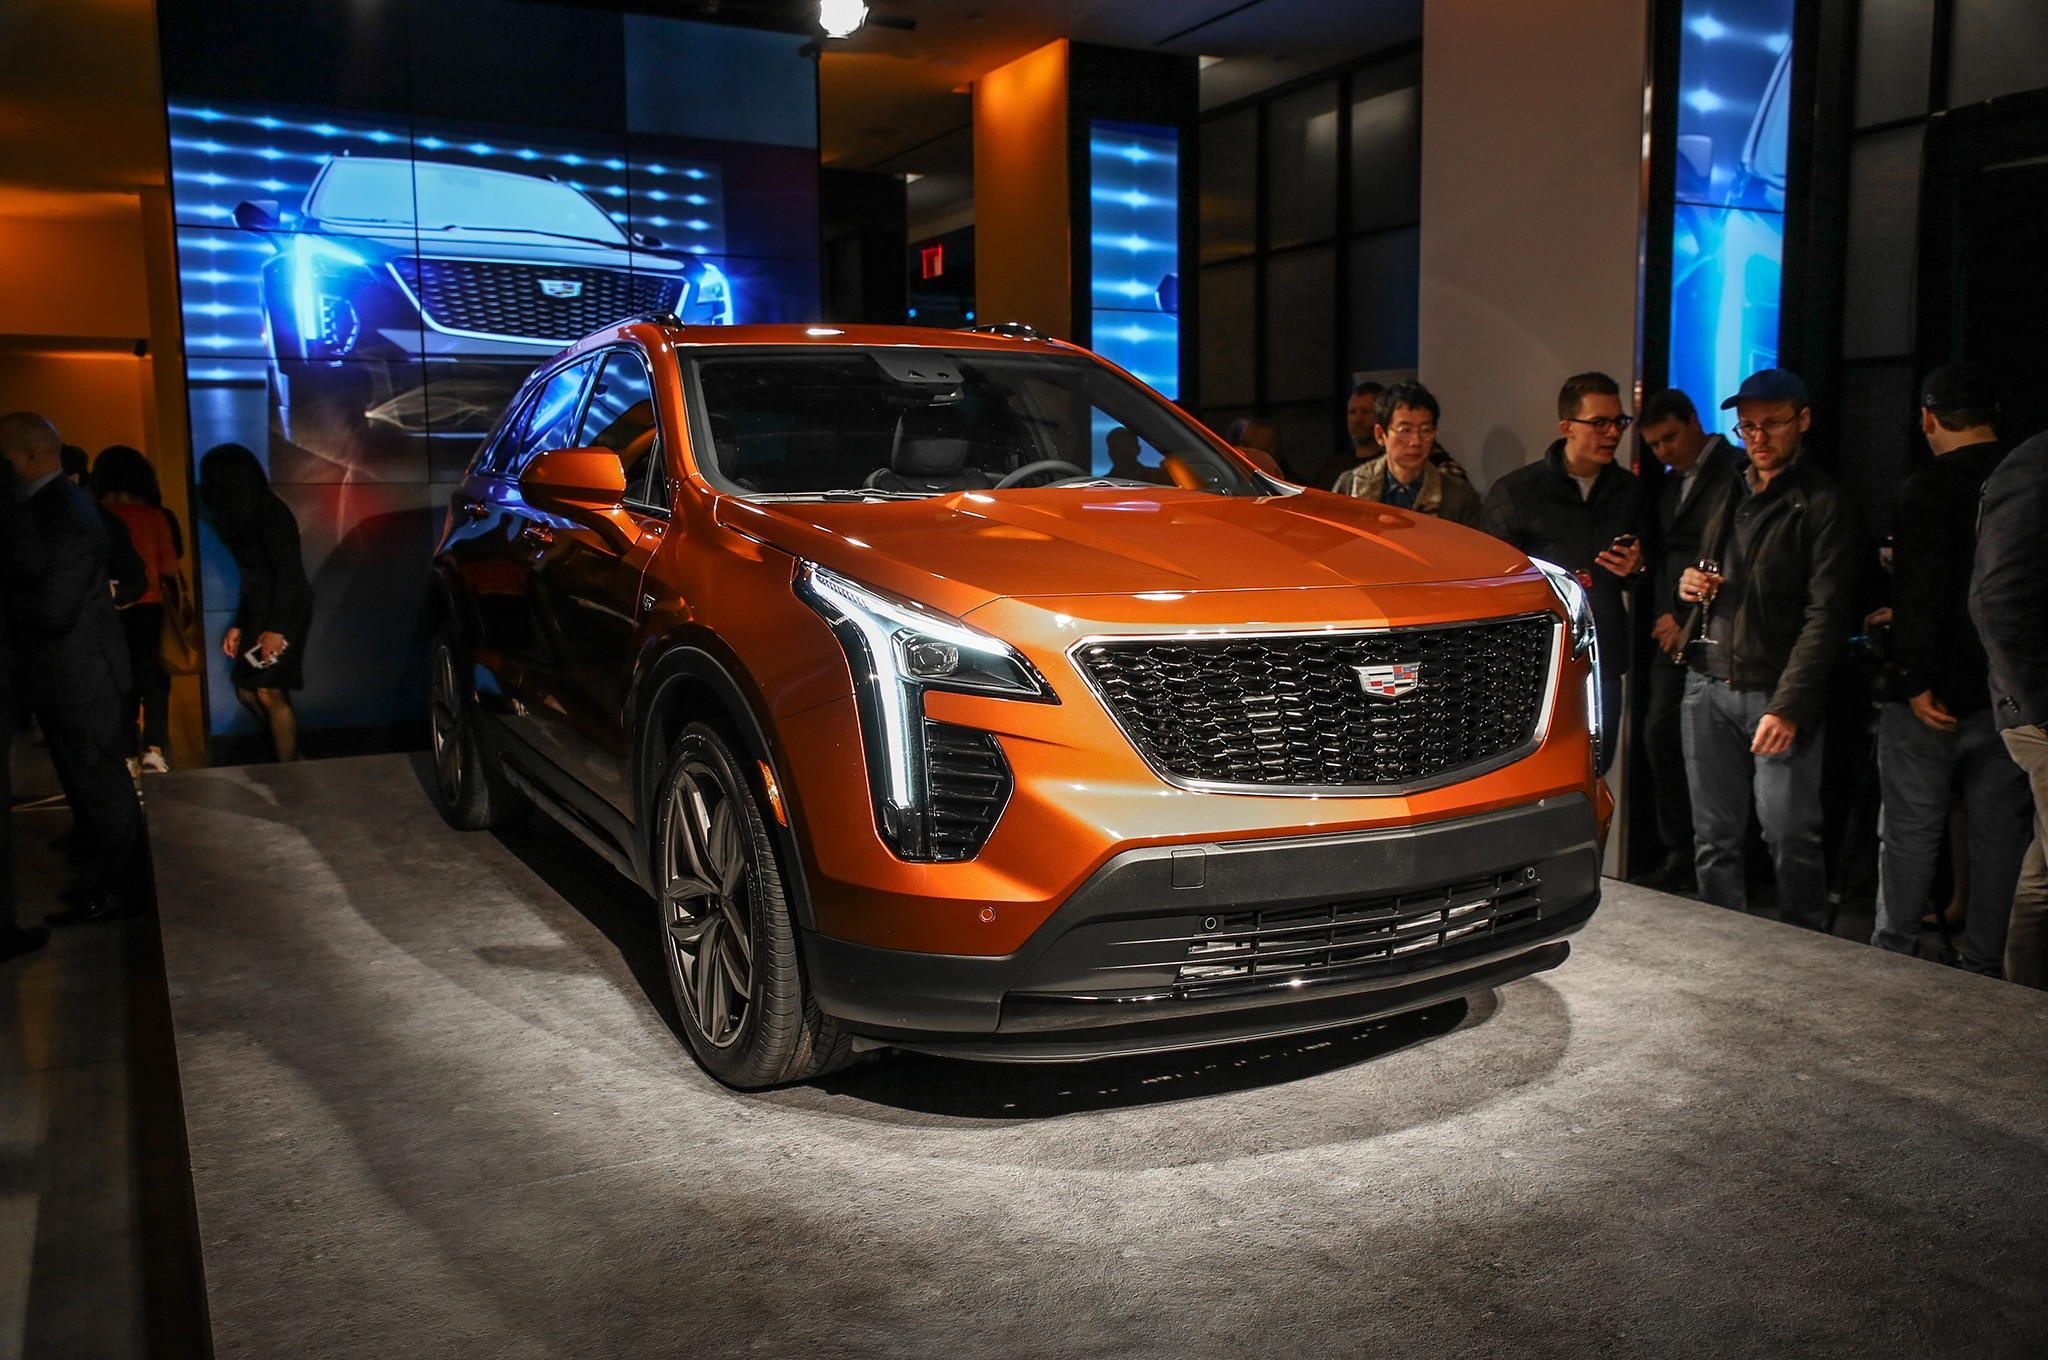 2019 Cadillac Xt4 Gives The General A Luxury Compact Crossover